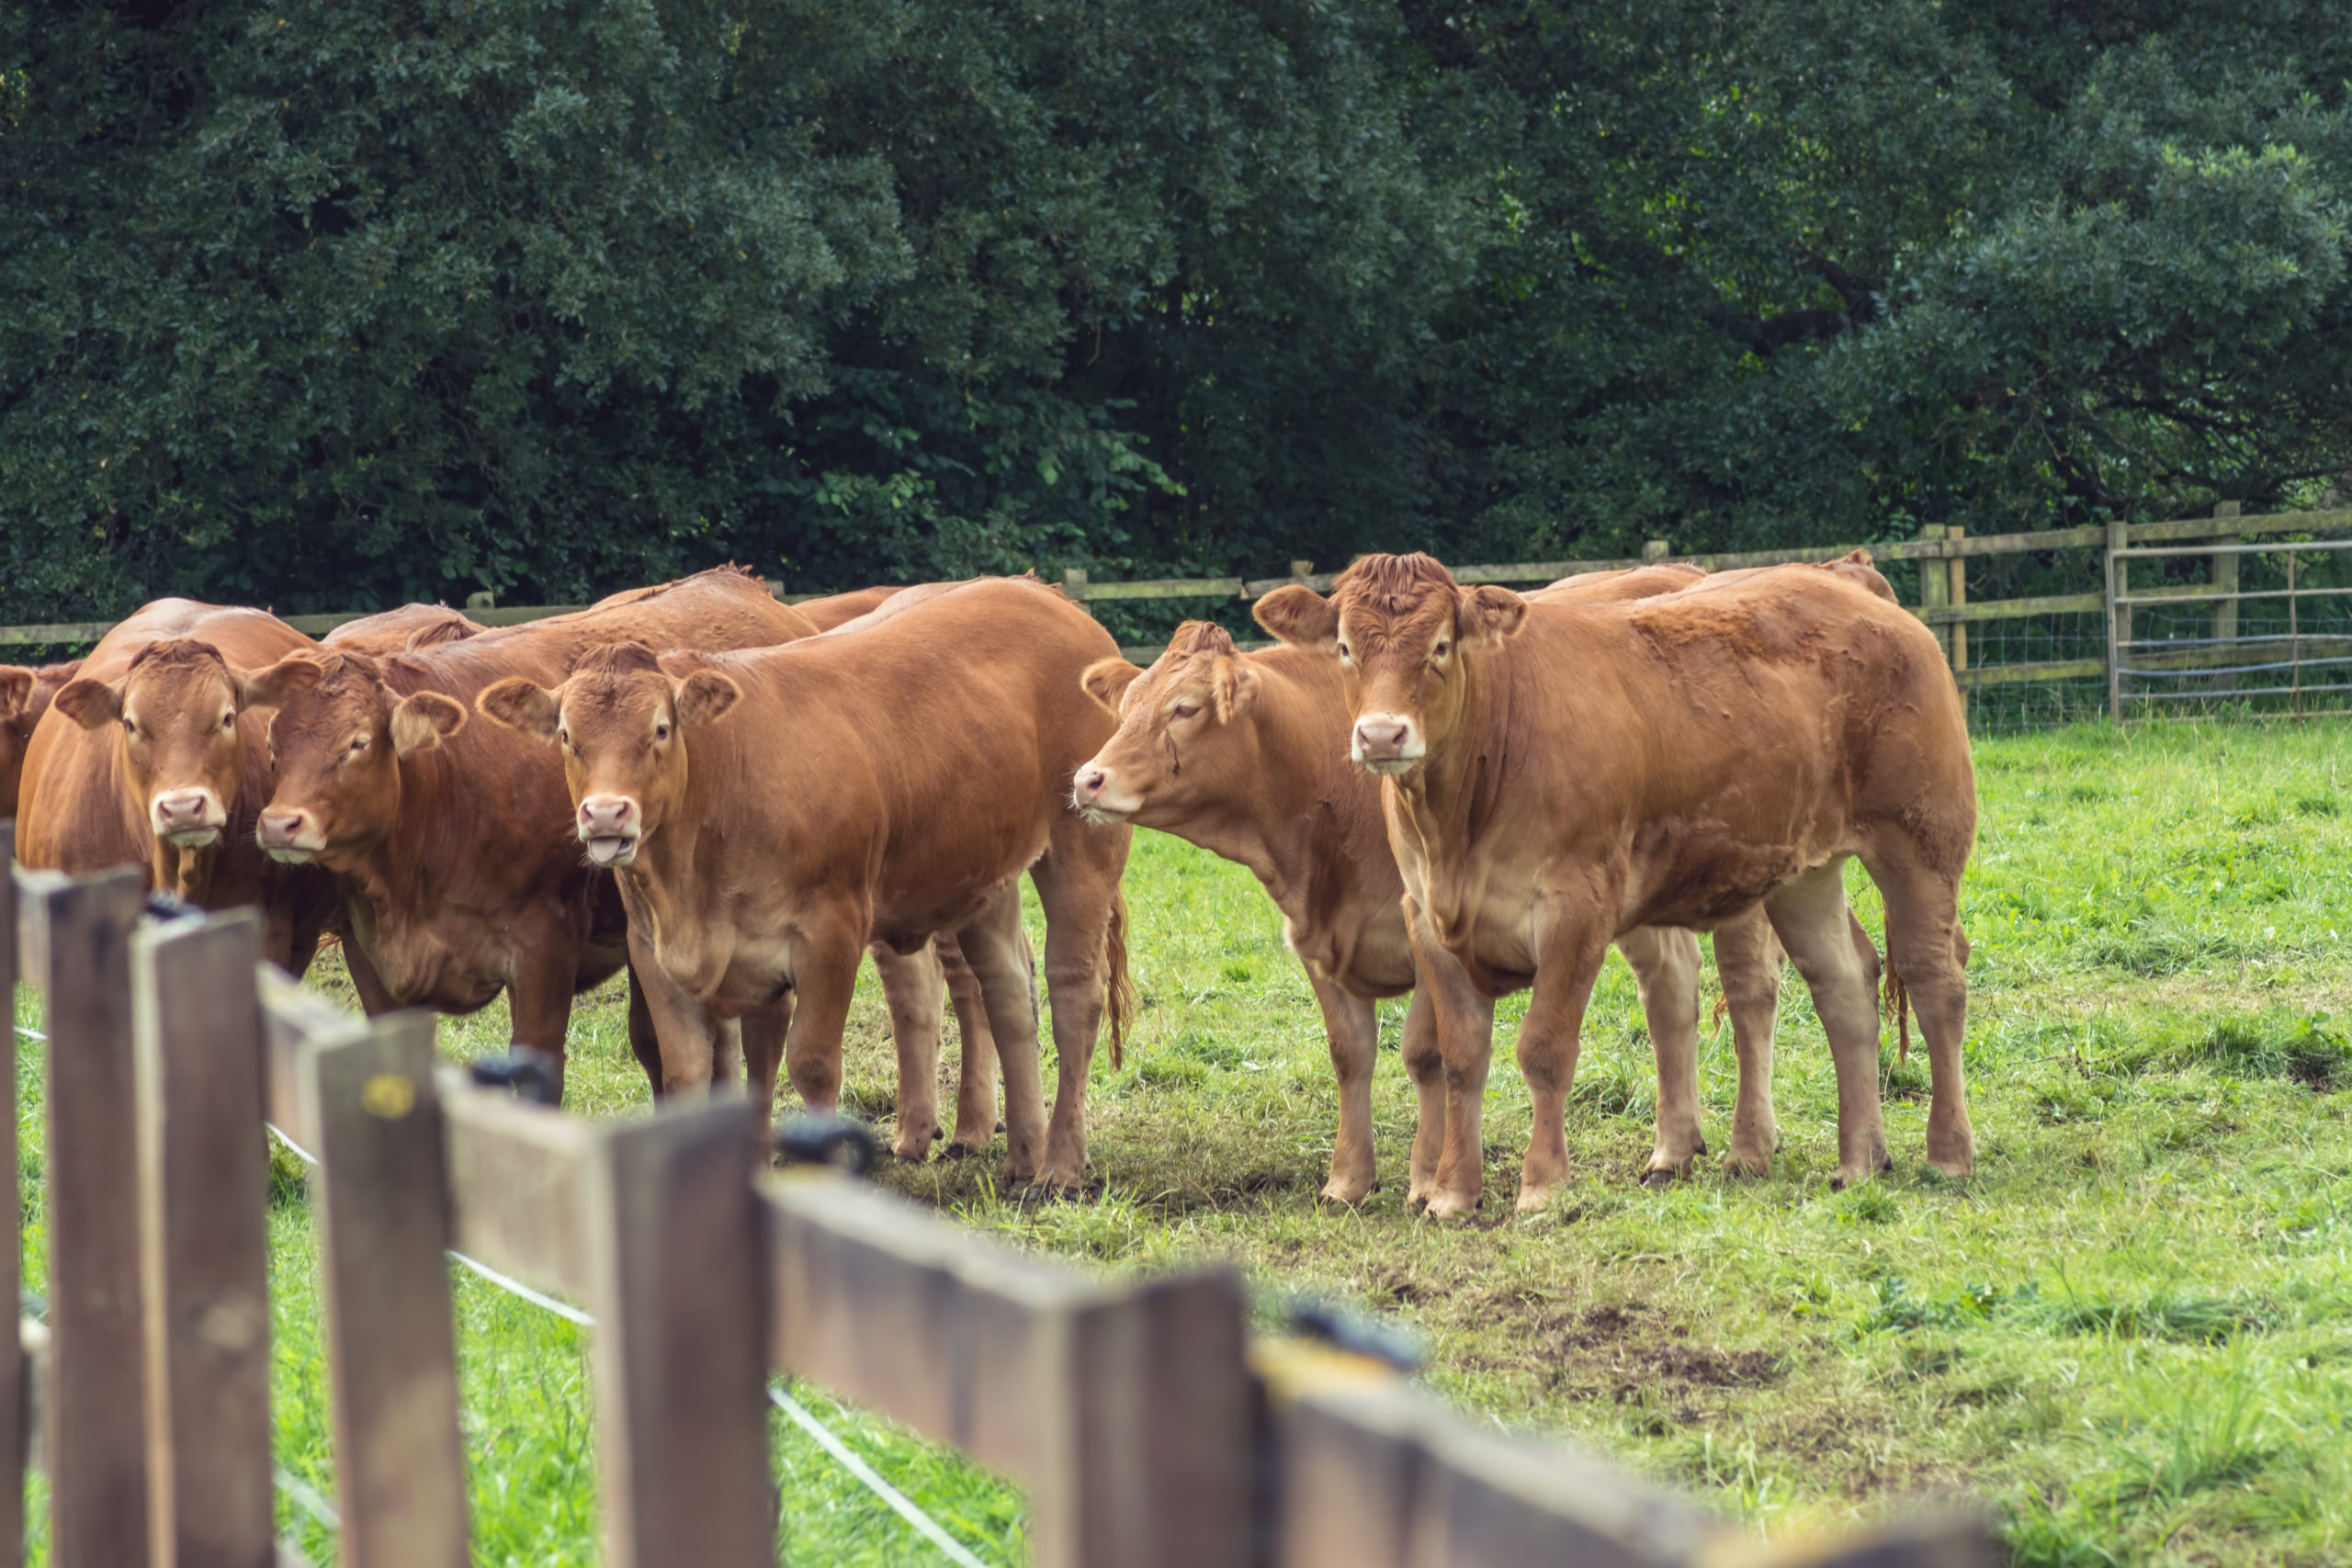 Brown cows in the field - TB Hub